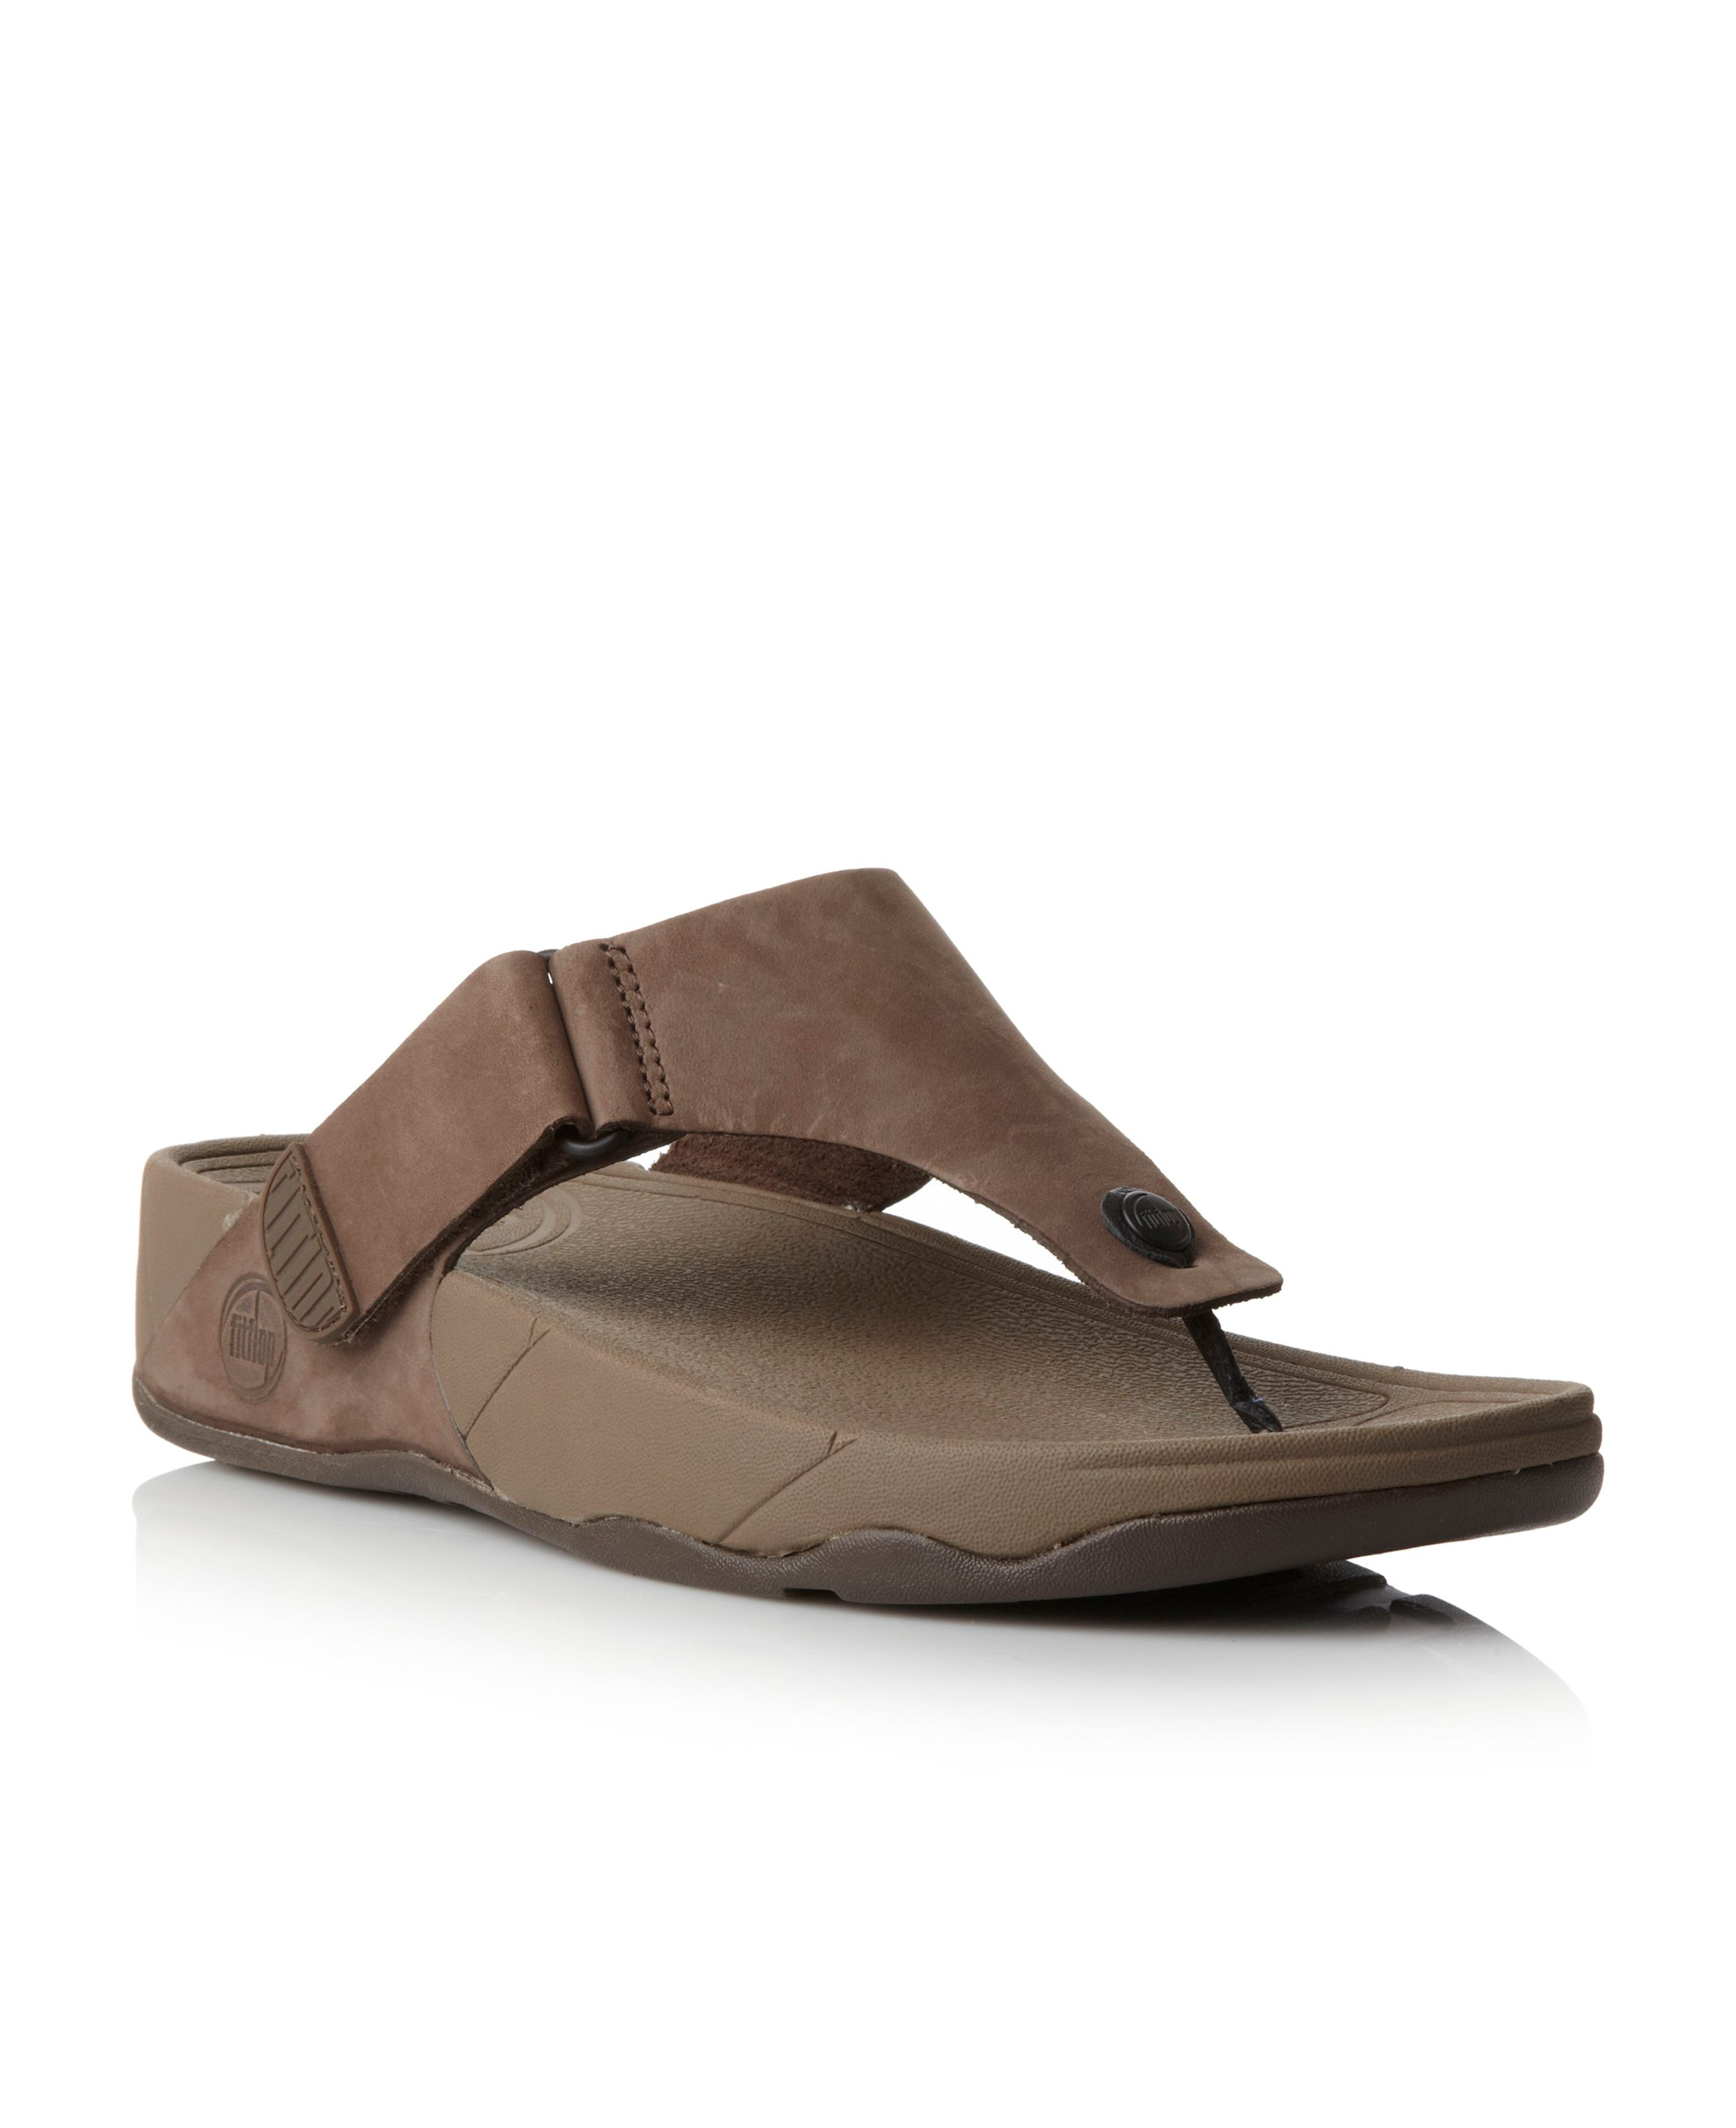 Trakk velcro strap t-post sandals